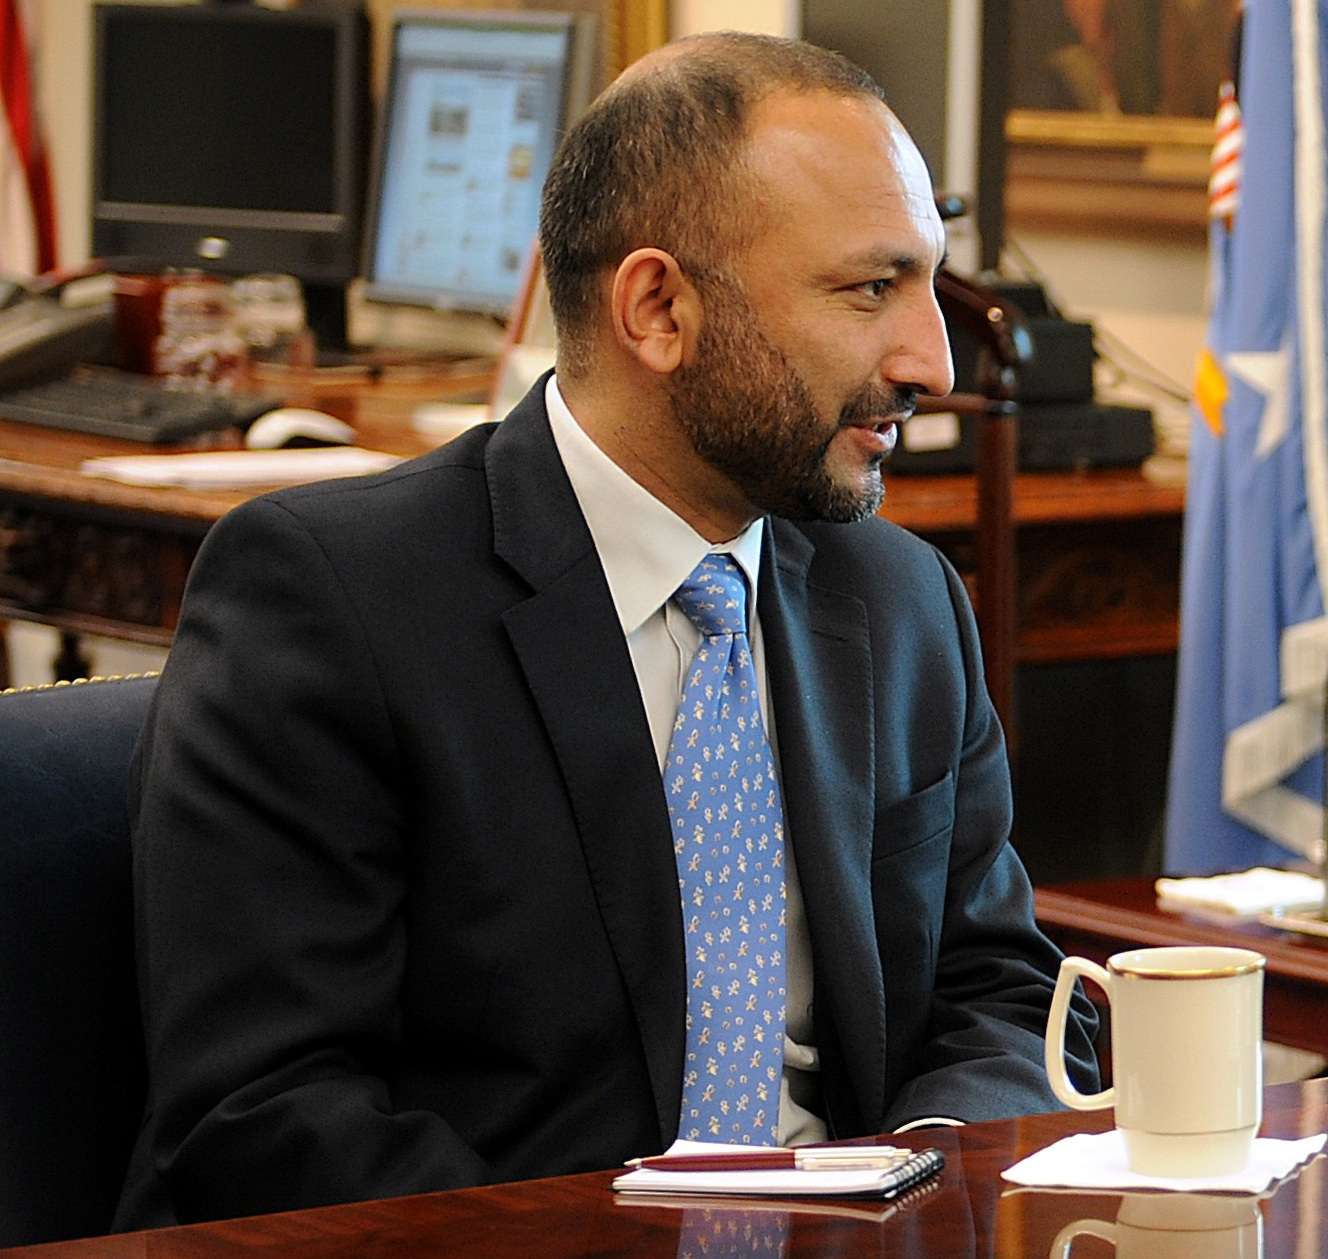 Hanif Atmar in a meeting at the Pentagon on Feb. 26, 2009. (Image Credit: U.S. Department of Defense)